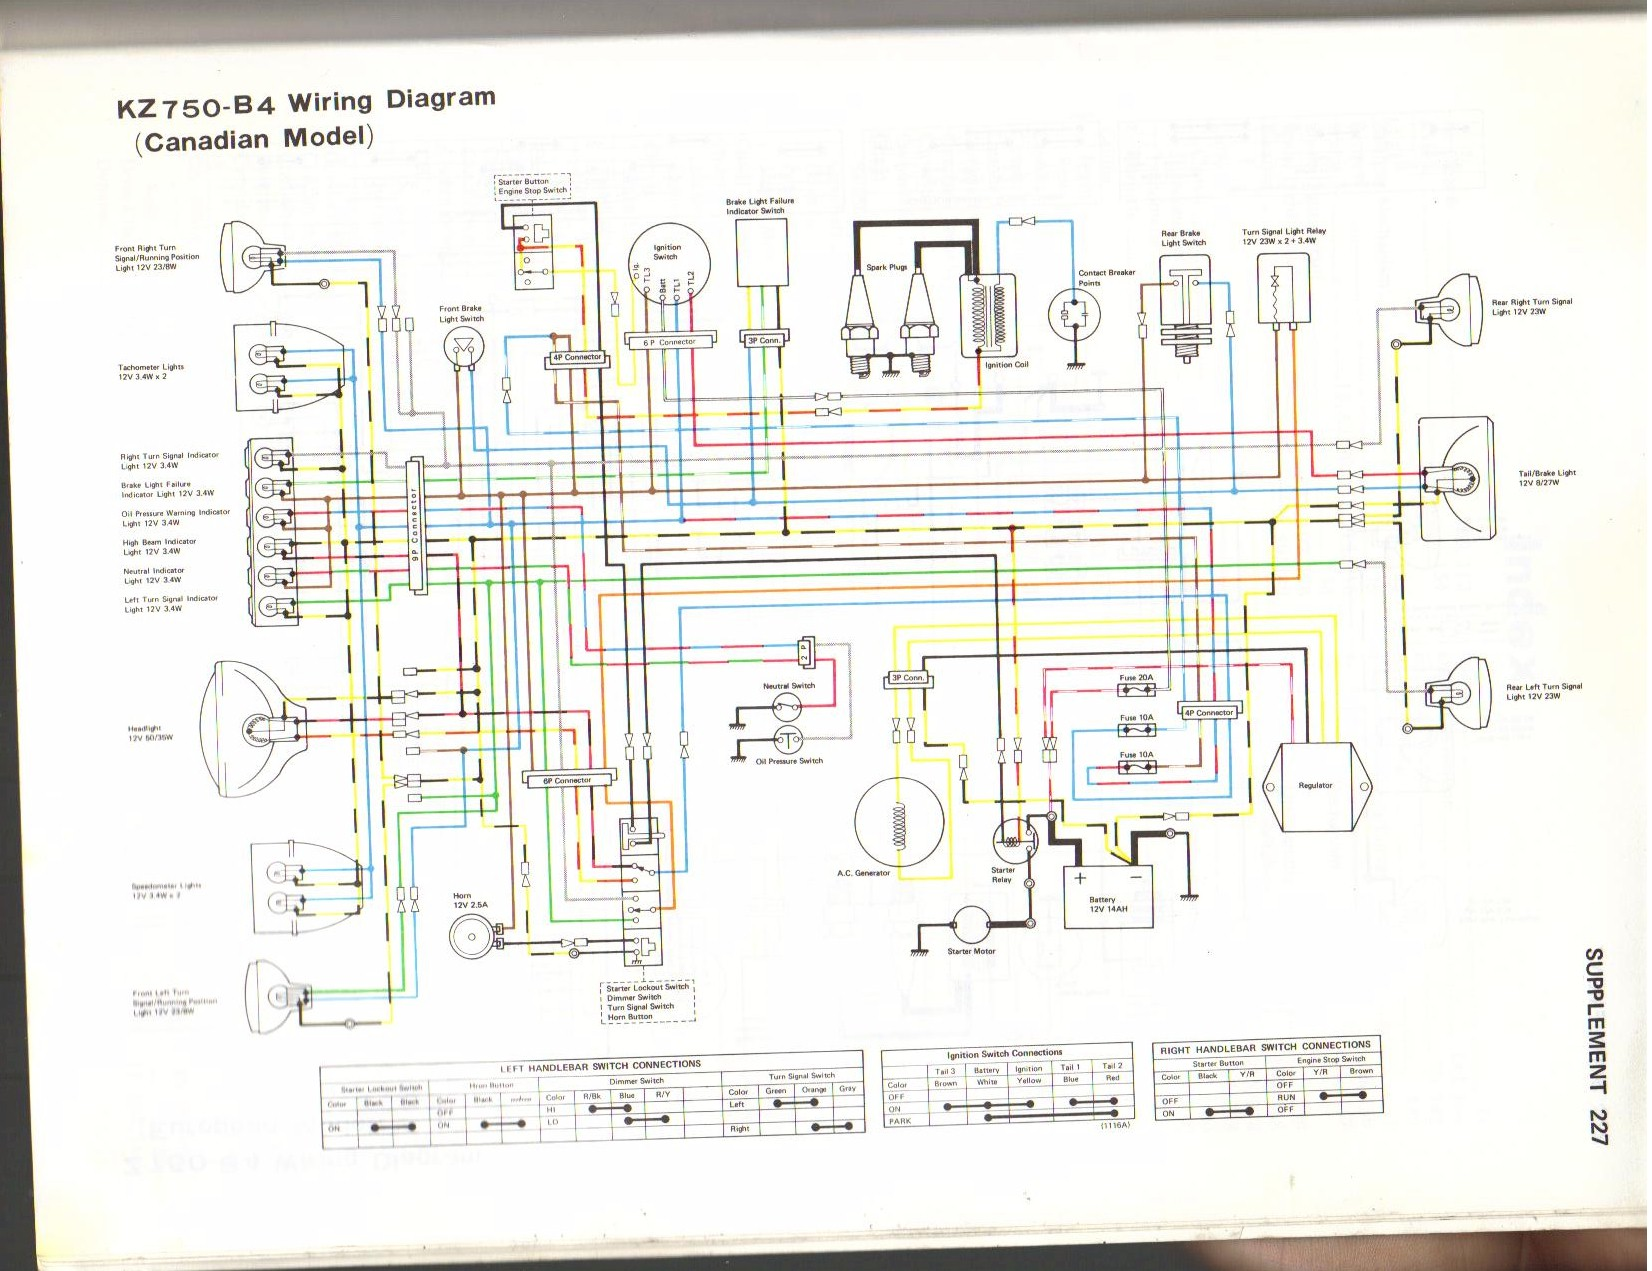 Wrg 8282 80 Yamaha Xs1100 Wiring Diagram Image 1980 Jeep Cj Download 1978 Kawasaki Kz1000 Free Picture House Suzuki Gs550